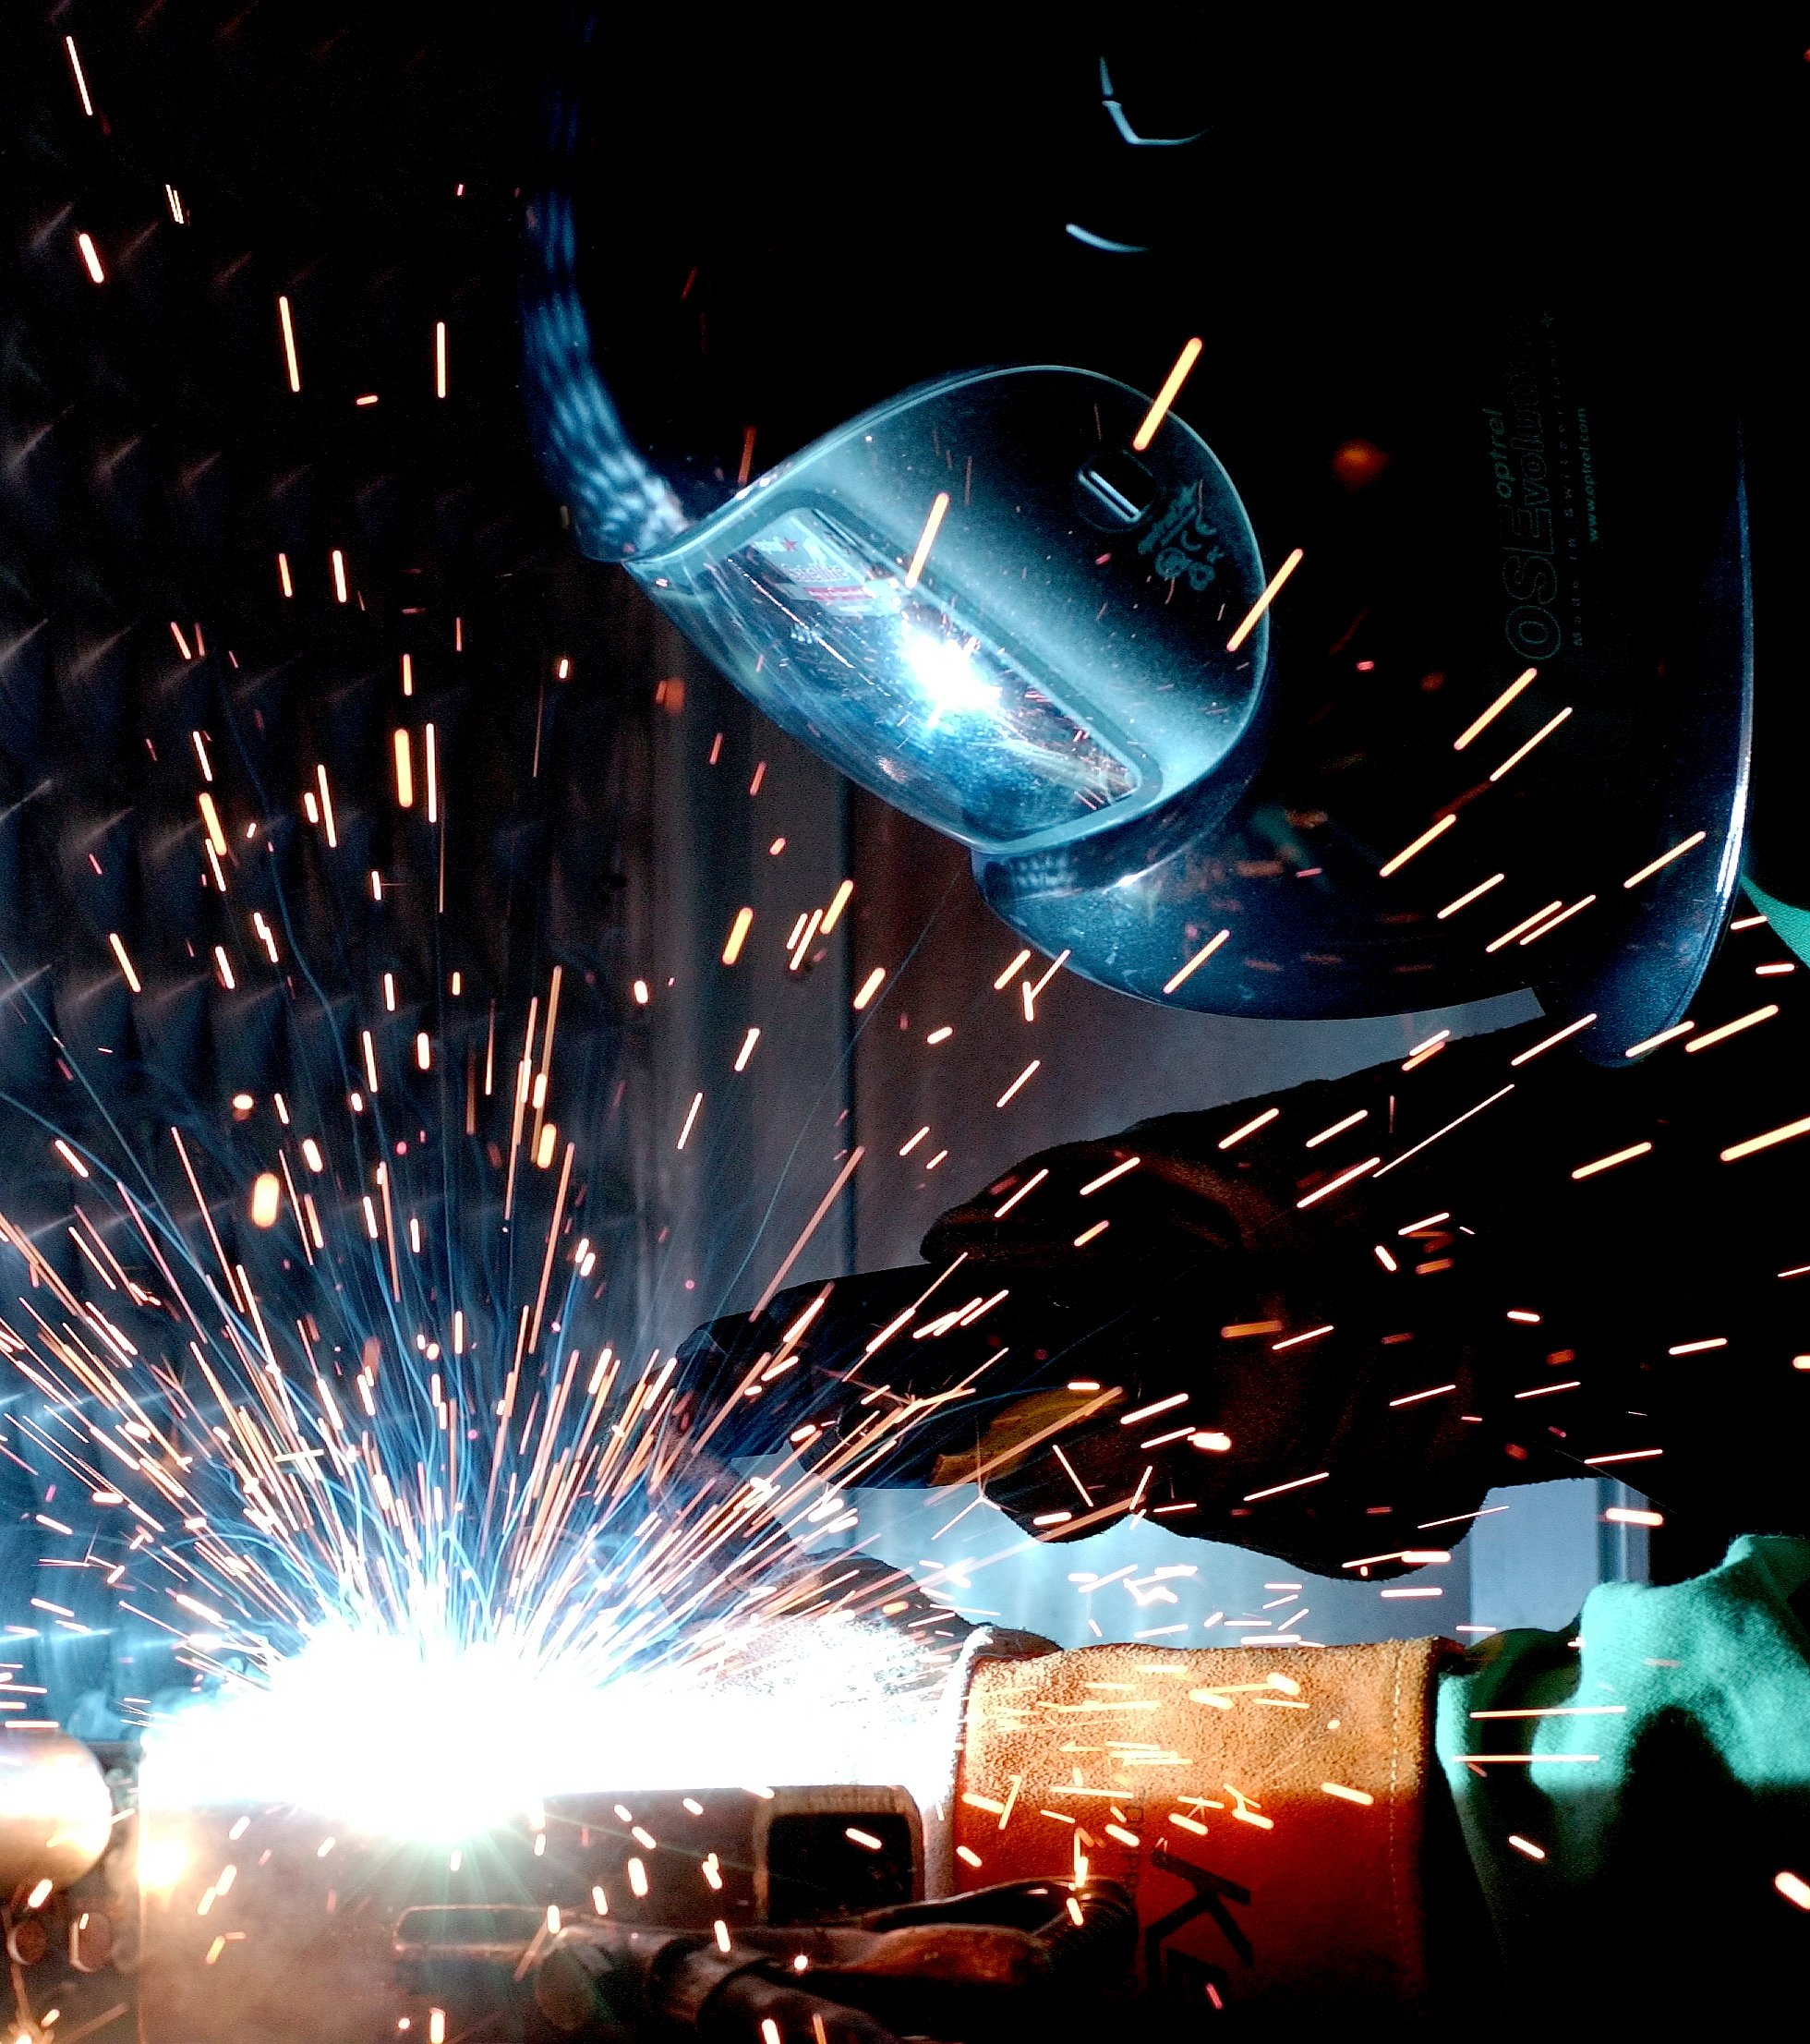 Humans are less efficient welders than robots because they cannot operate all day, every day.